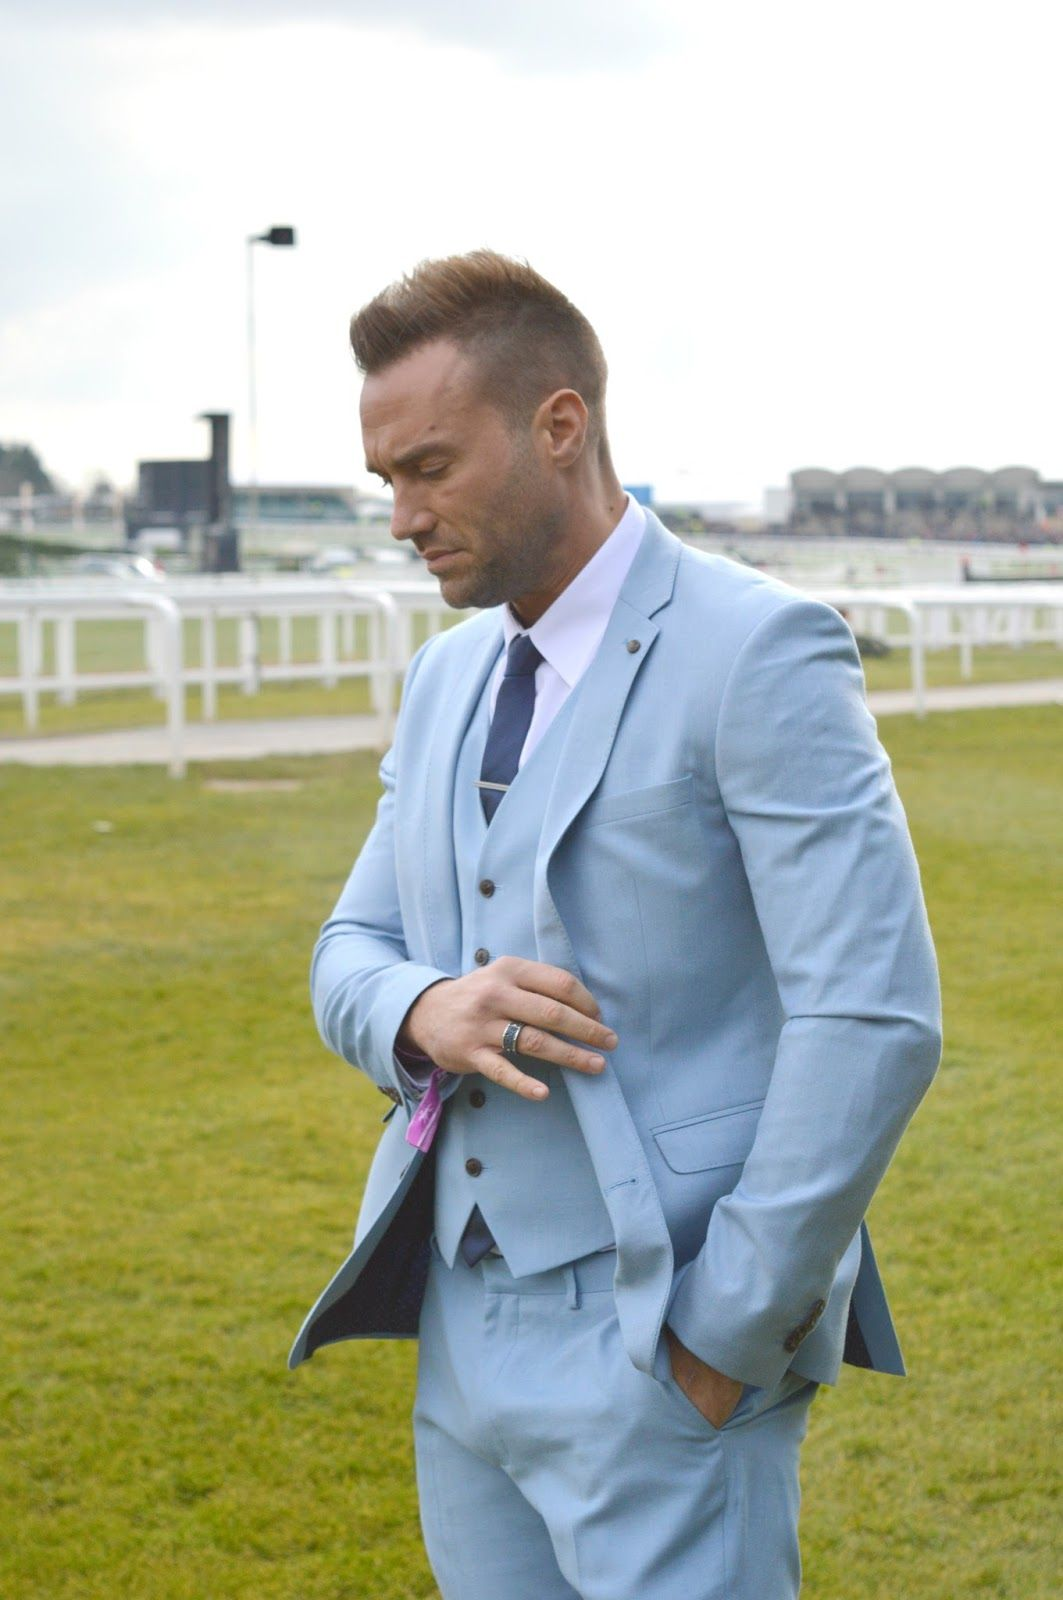 A very #SmartOccasion with Burton Menswear | Pinterest | Light blue ...